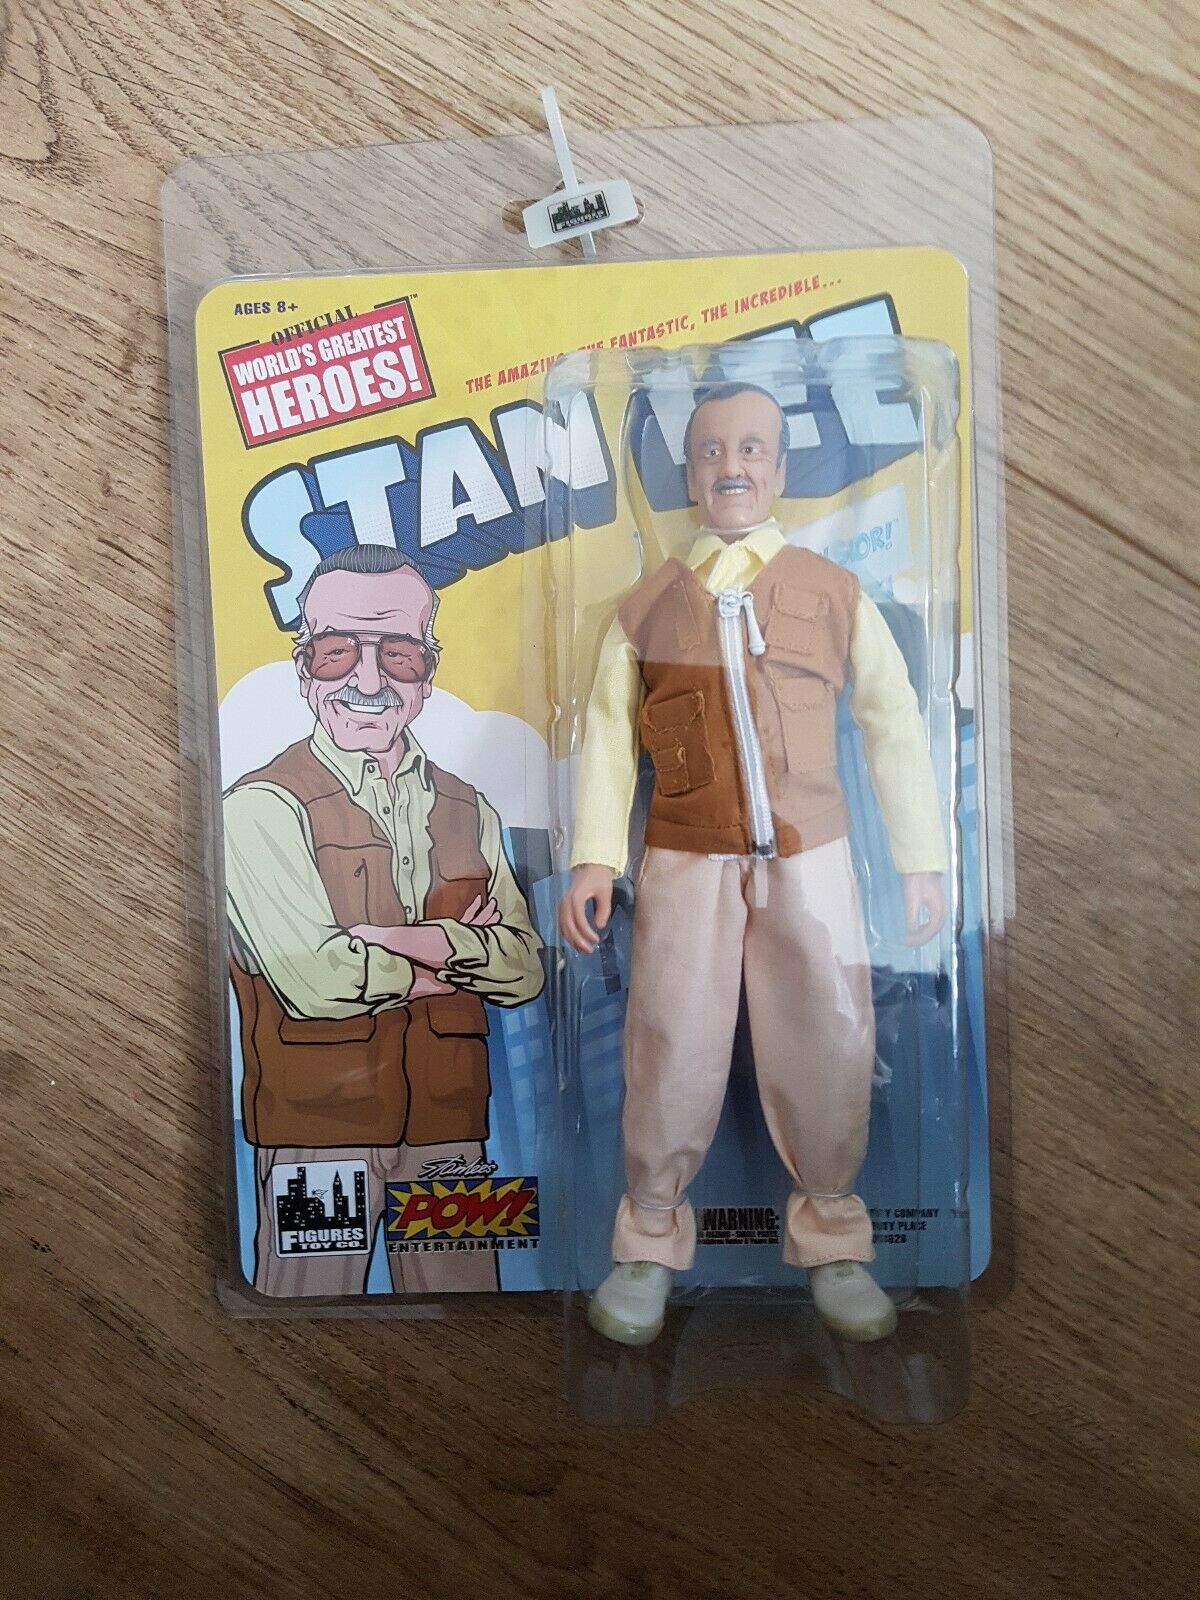 Figuras Juguete Co. mundos mayor Hero's Stan Lee Excelsior Retro Figura. Raro.